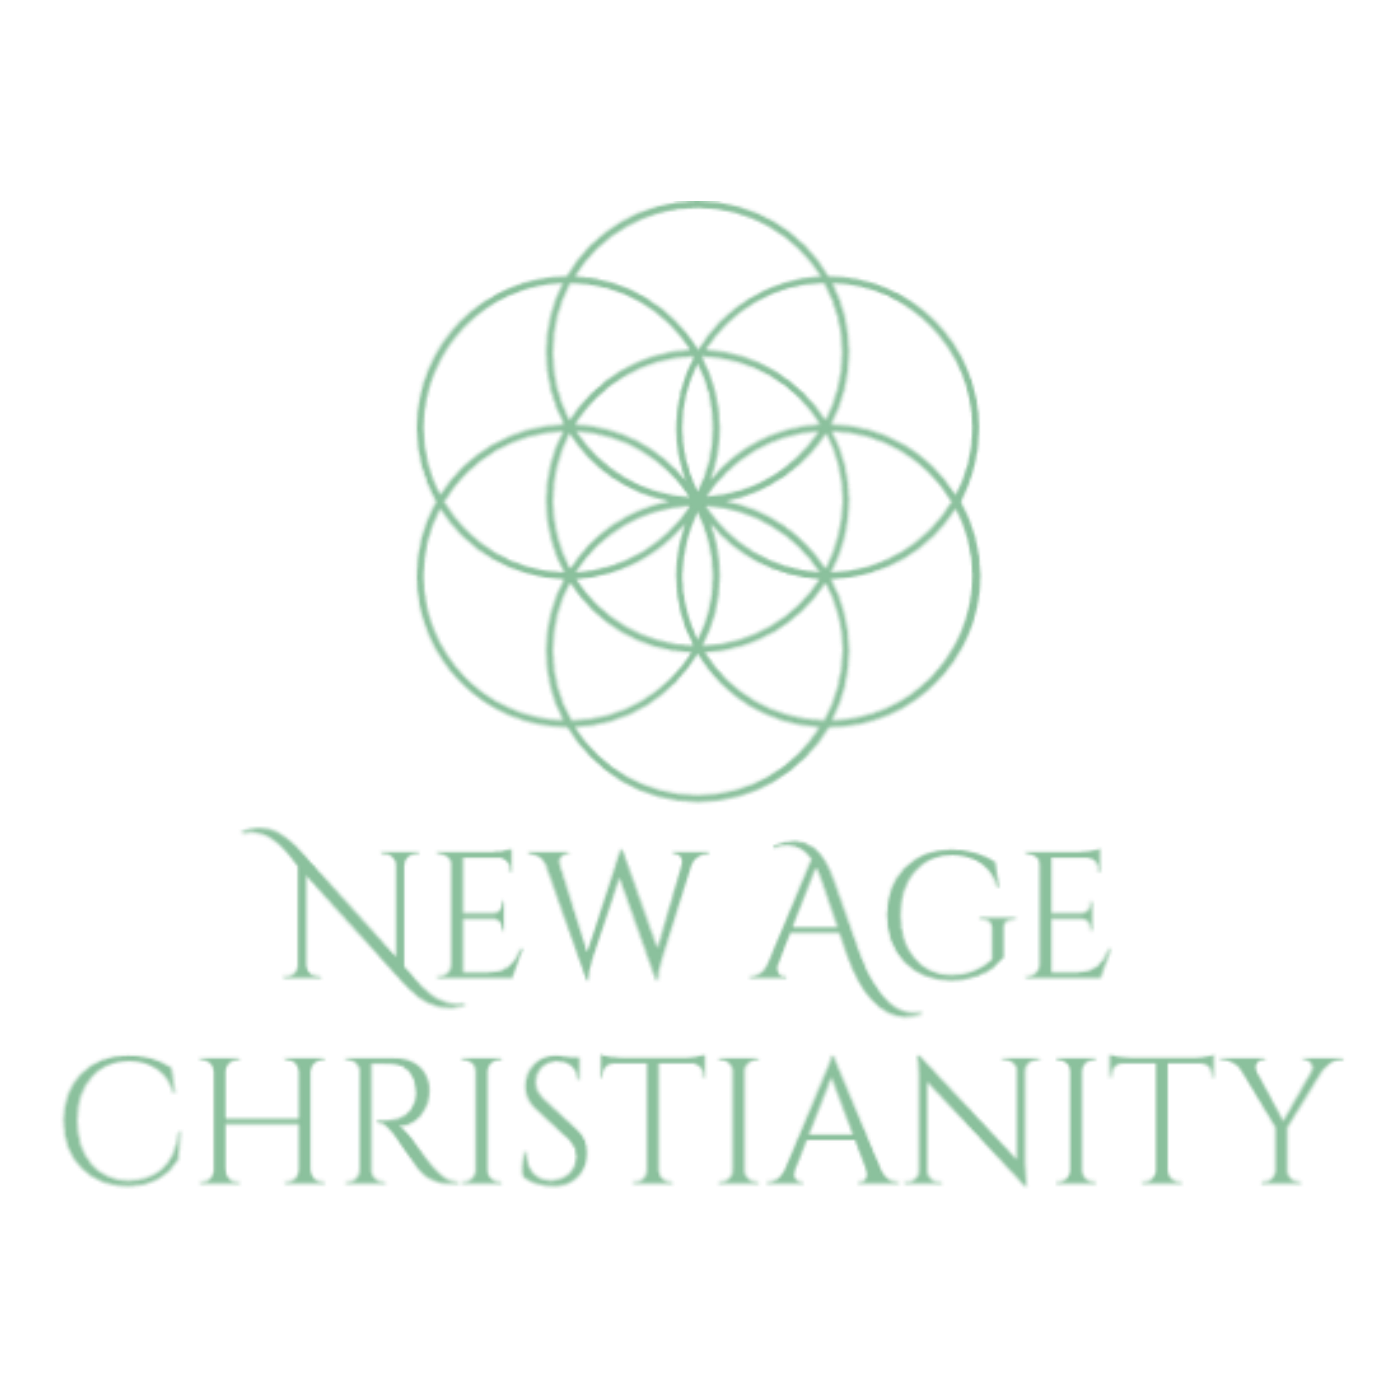 New Age Christianity